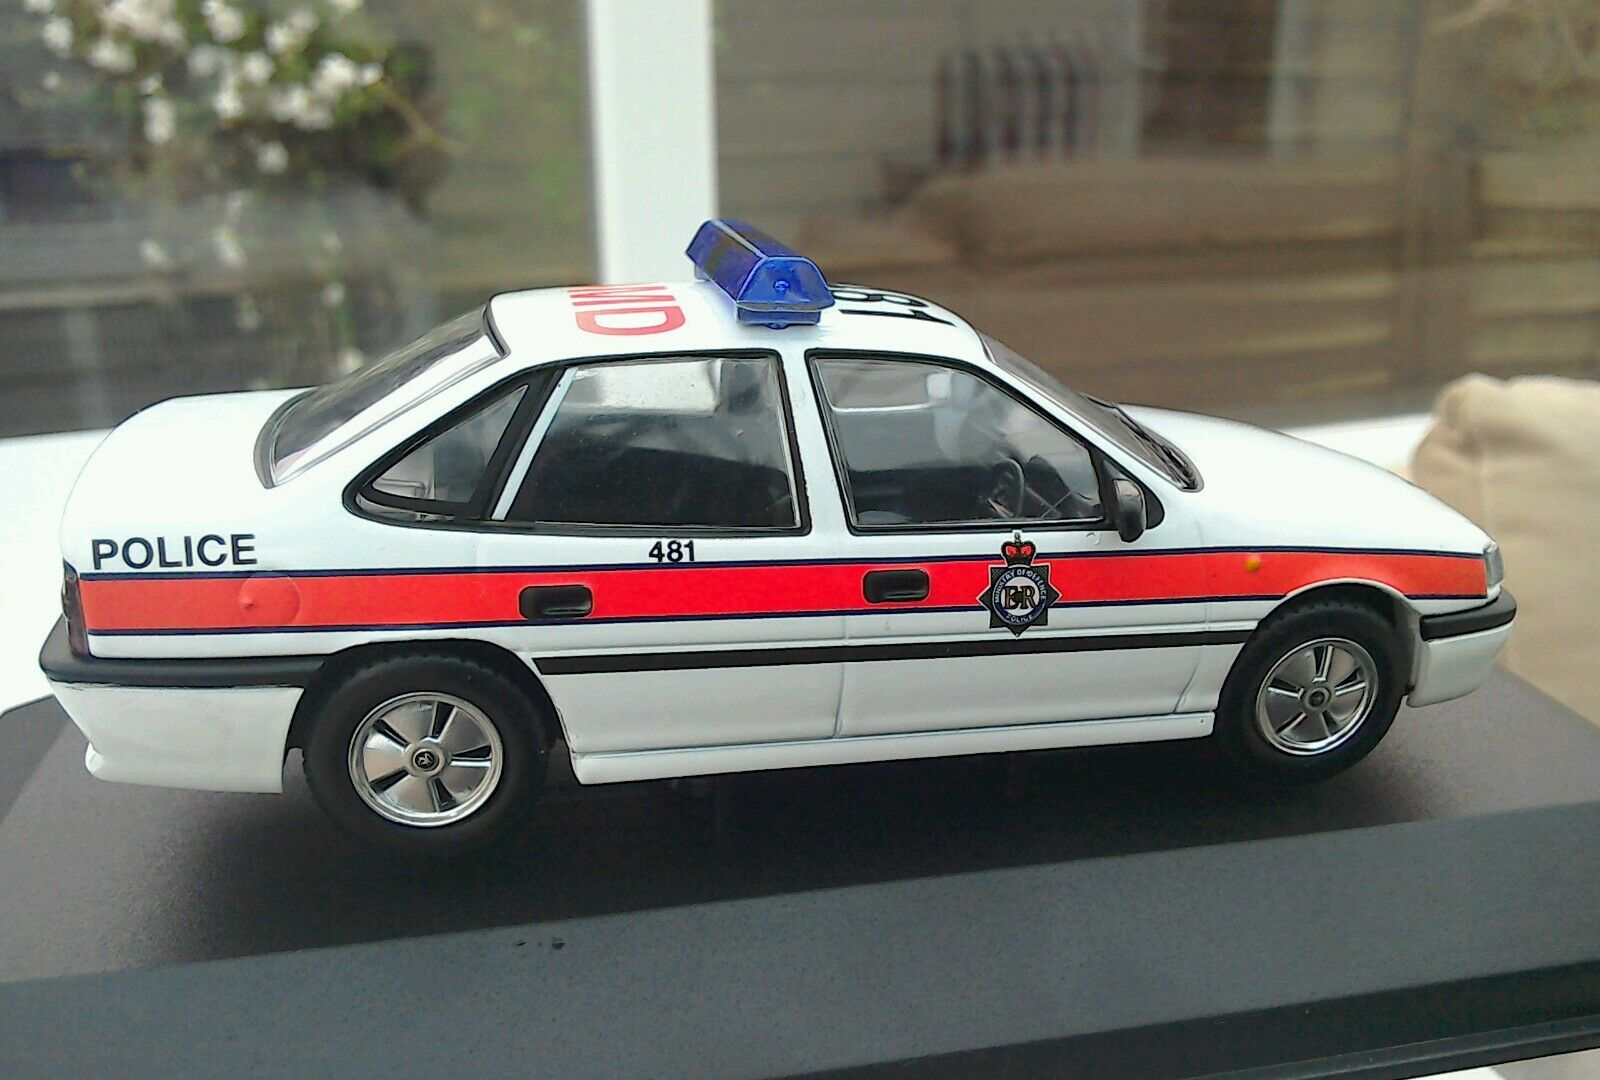 1 43 Vanguards MOD Police Vauxhall Cavalier Mk3 Perfect VA13104 Boxed Ltd Edit'